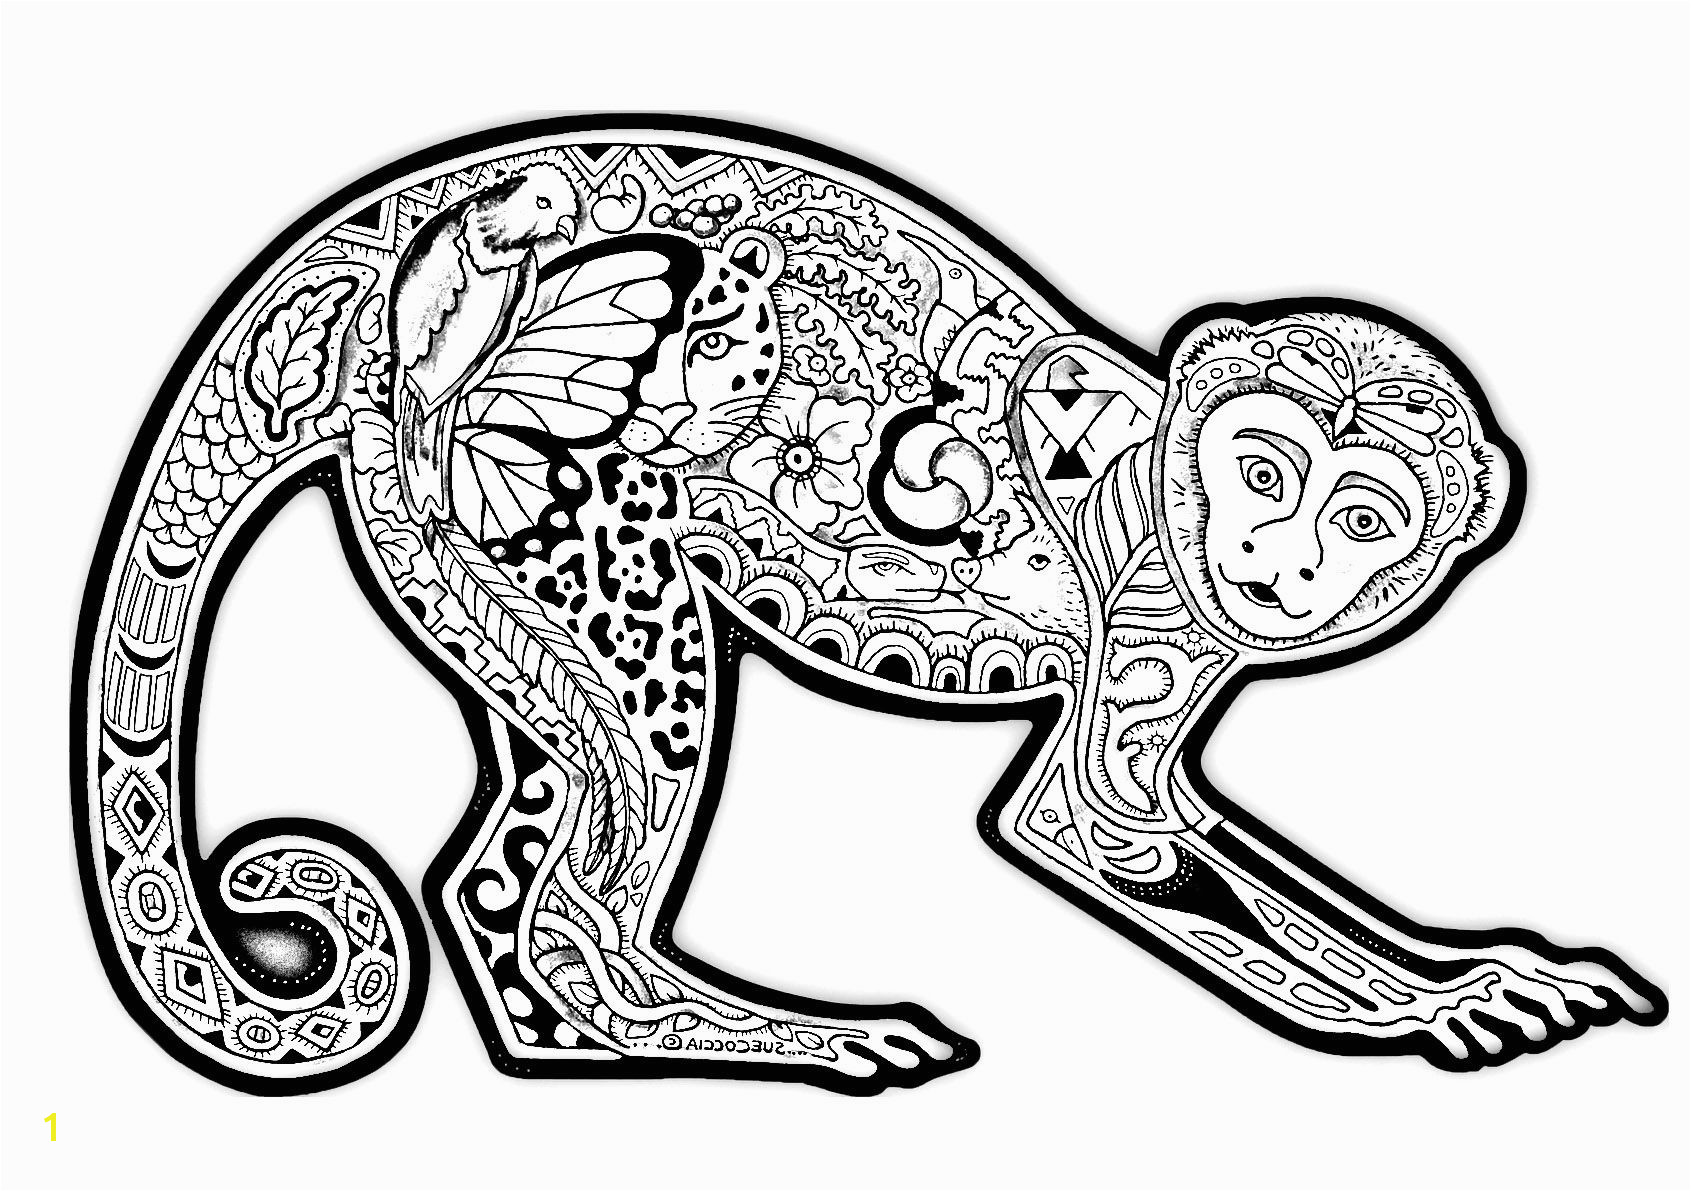 Free coloring page coloring difficult monkey A coloring page with a monkey full of various plant patterns